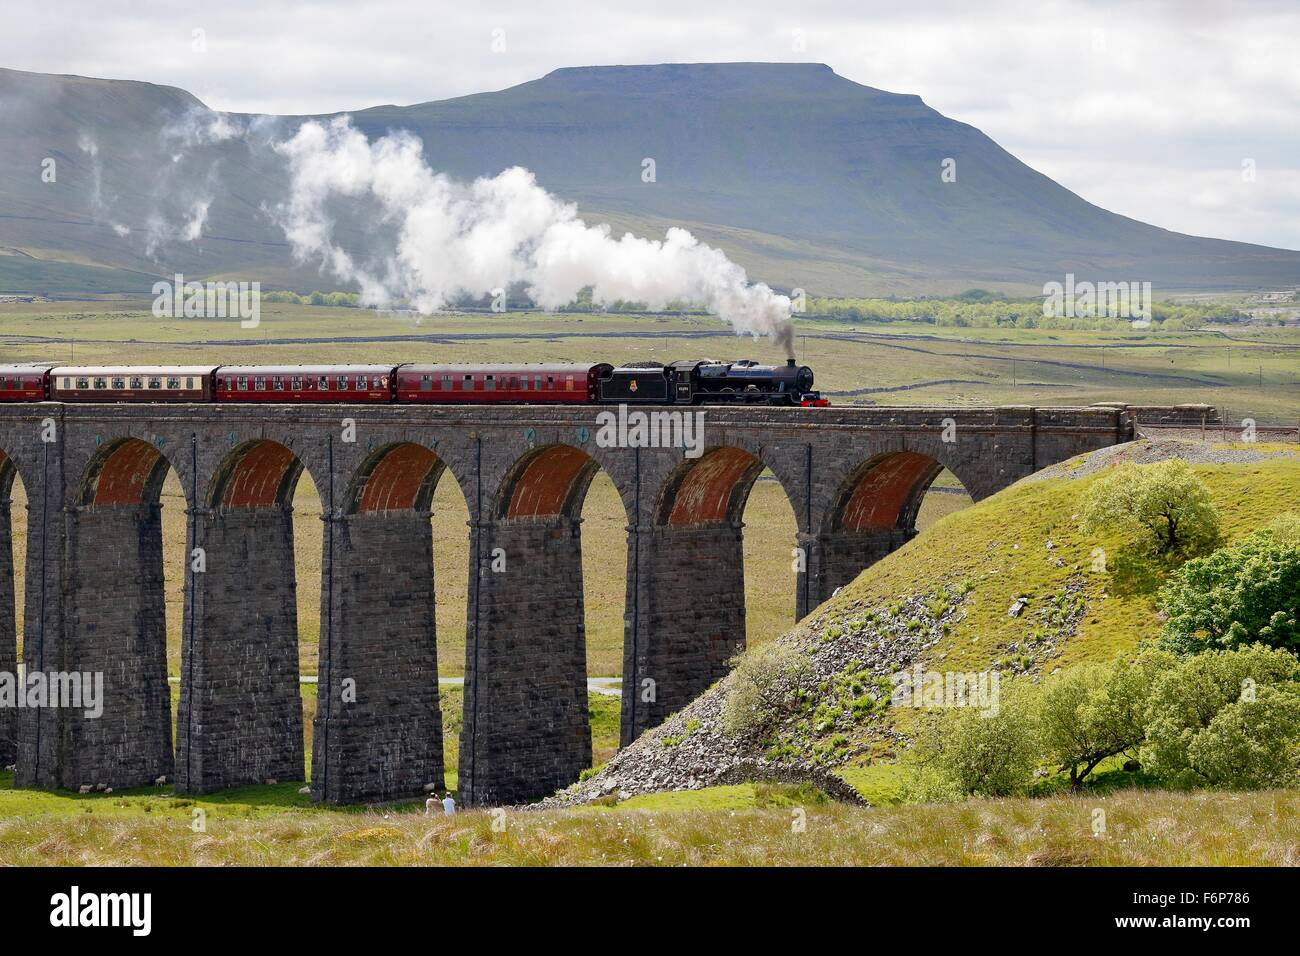 Ribblehead Viaduct. Steam train LMS Jubilee Class Leander 45690 crossing the viaduct below Ingleborough hill. - Stock Image